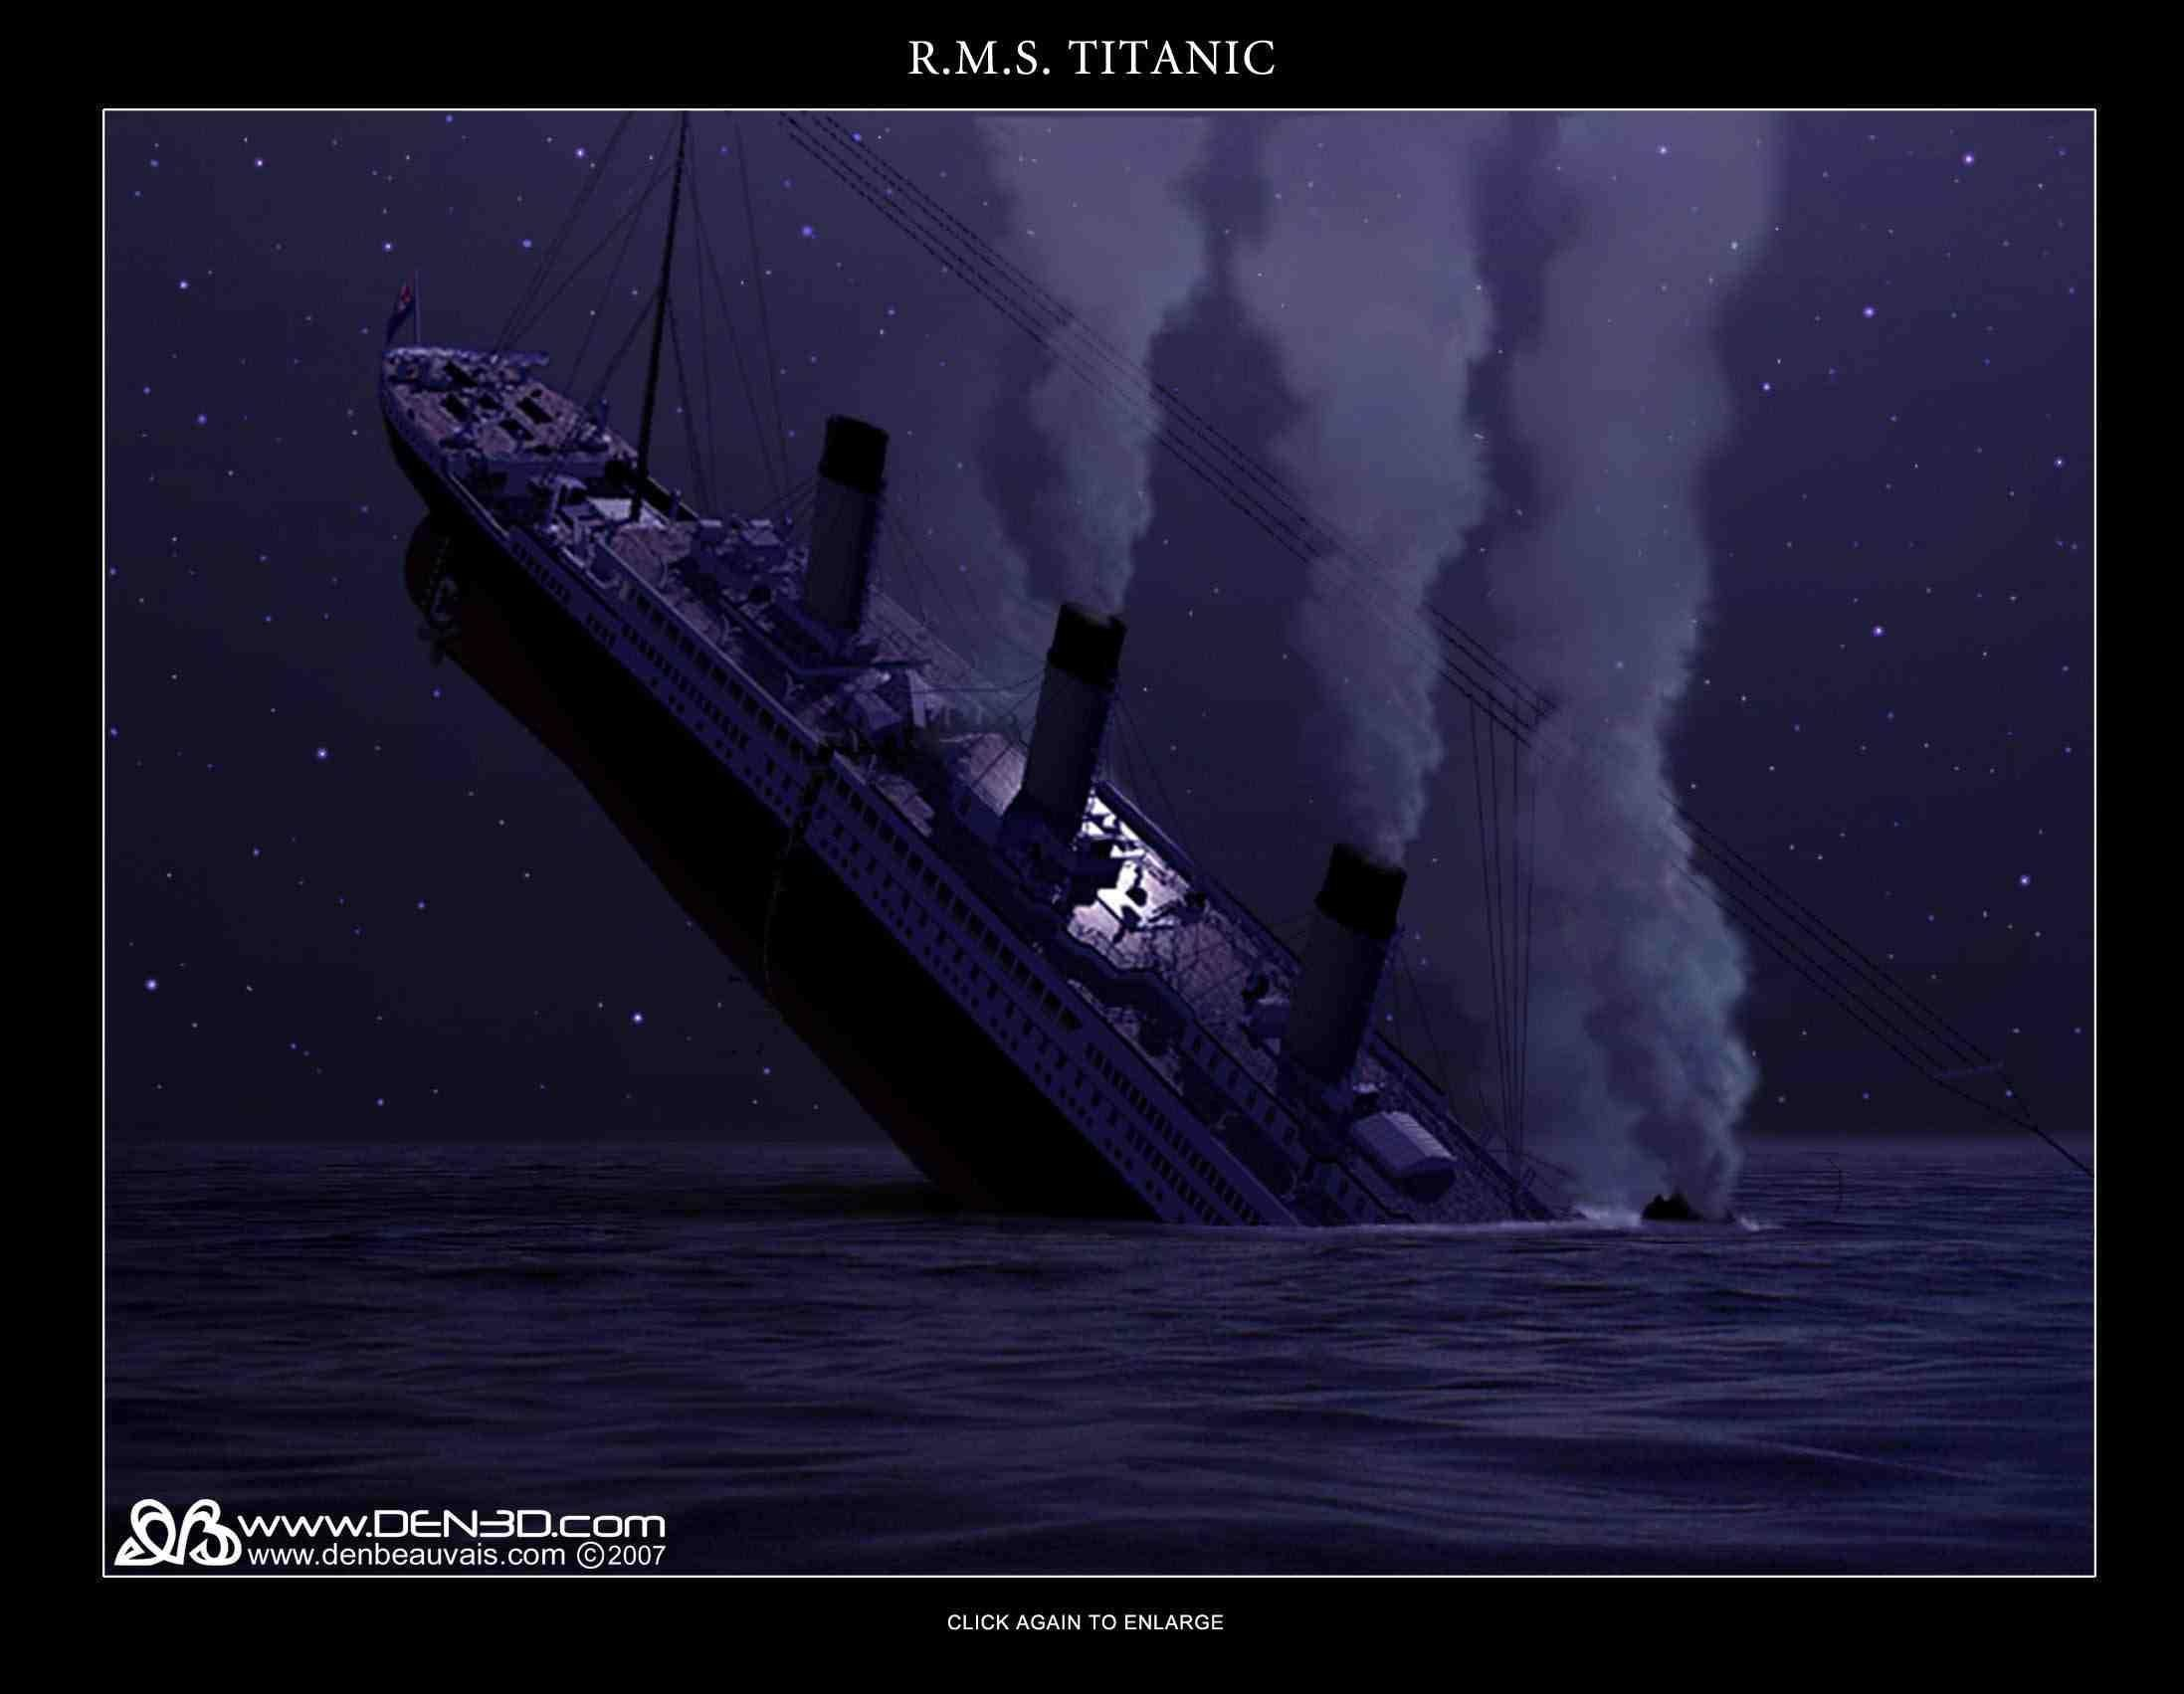 2195x1703 Titanic Stern Cracking